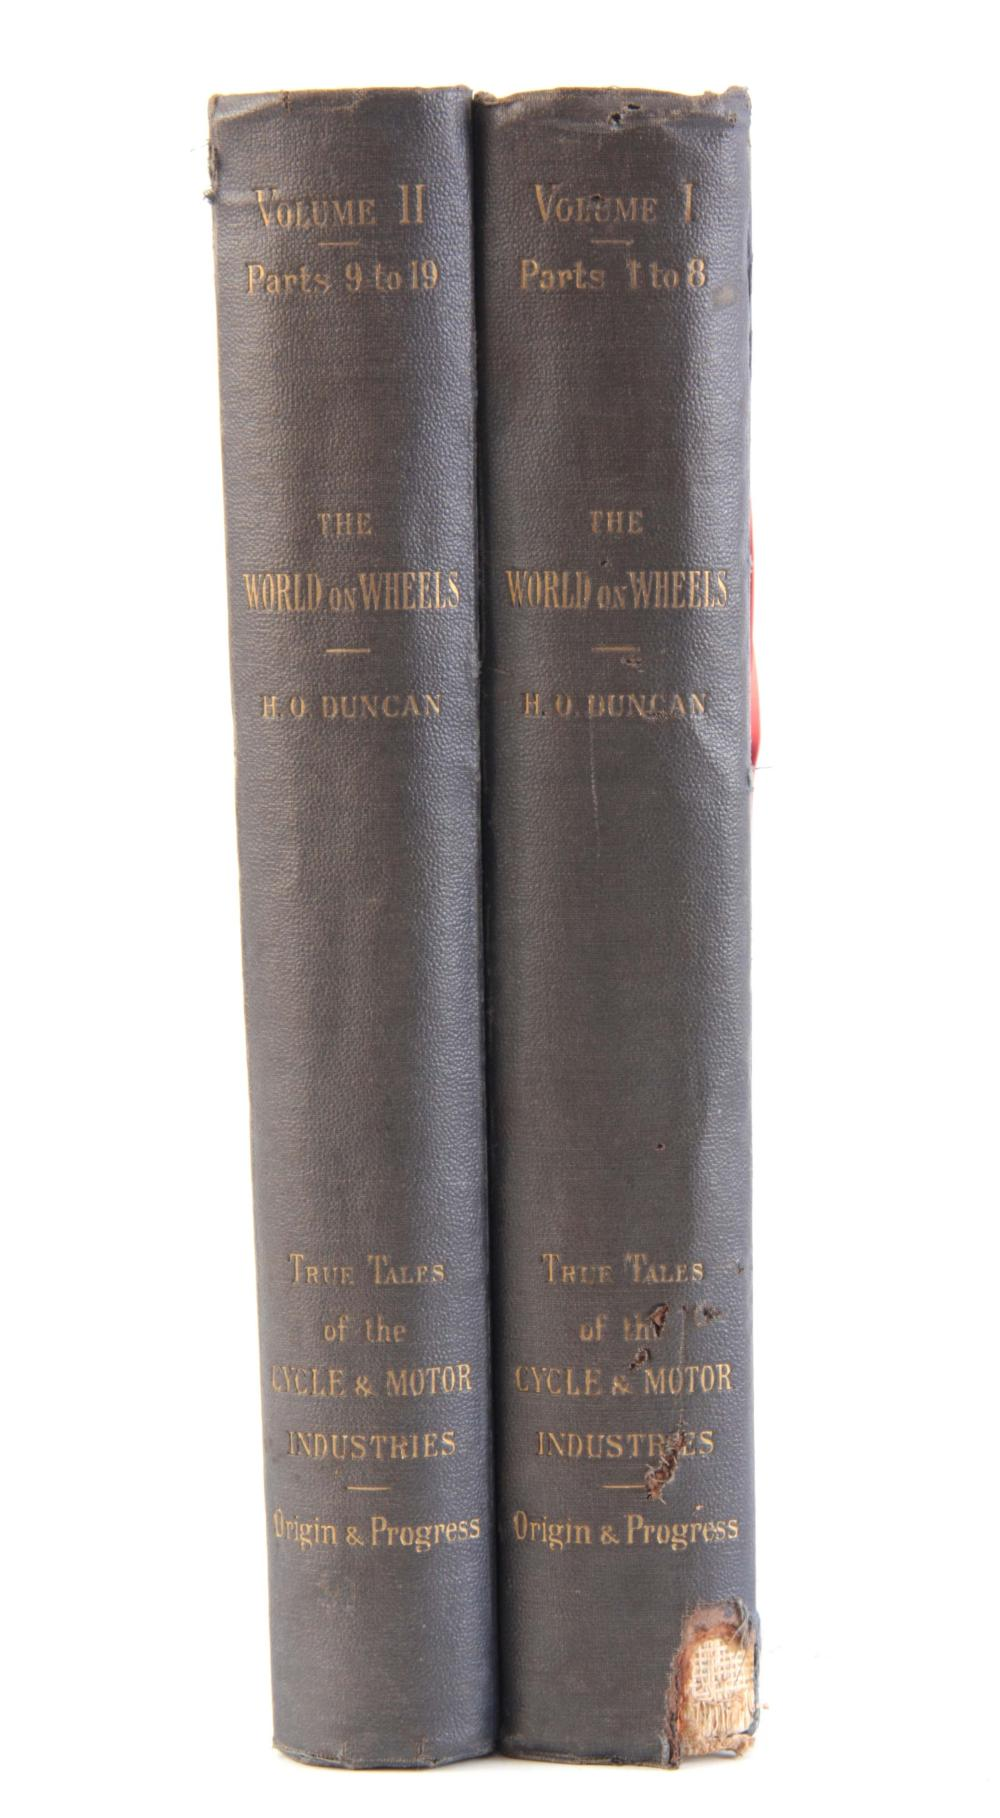 A SET OF 2 VOLUMES OF THE WORLD ON WHEELS by H.O.D